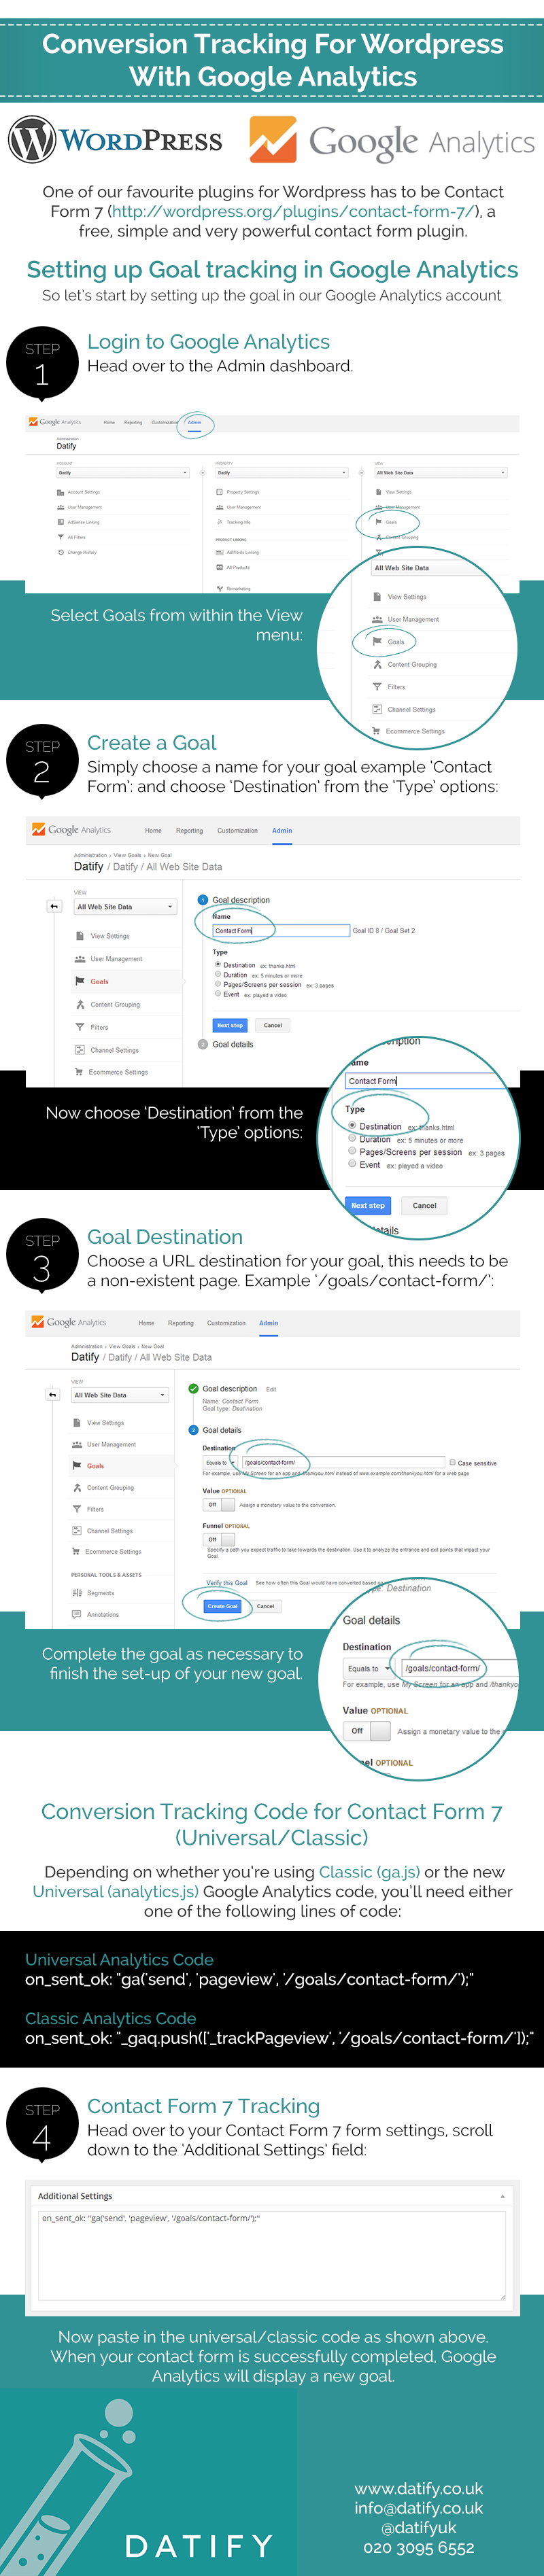 Conversion-Tracking-For-Wordpress-with-Google-Analytics-Infographic (1)